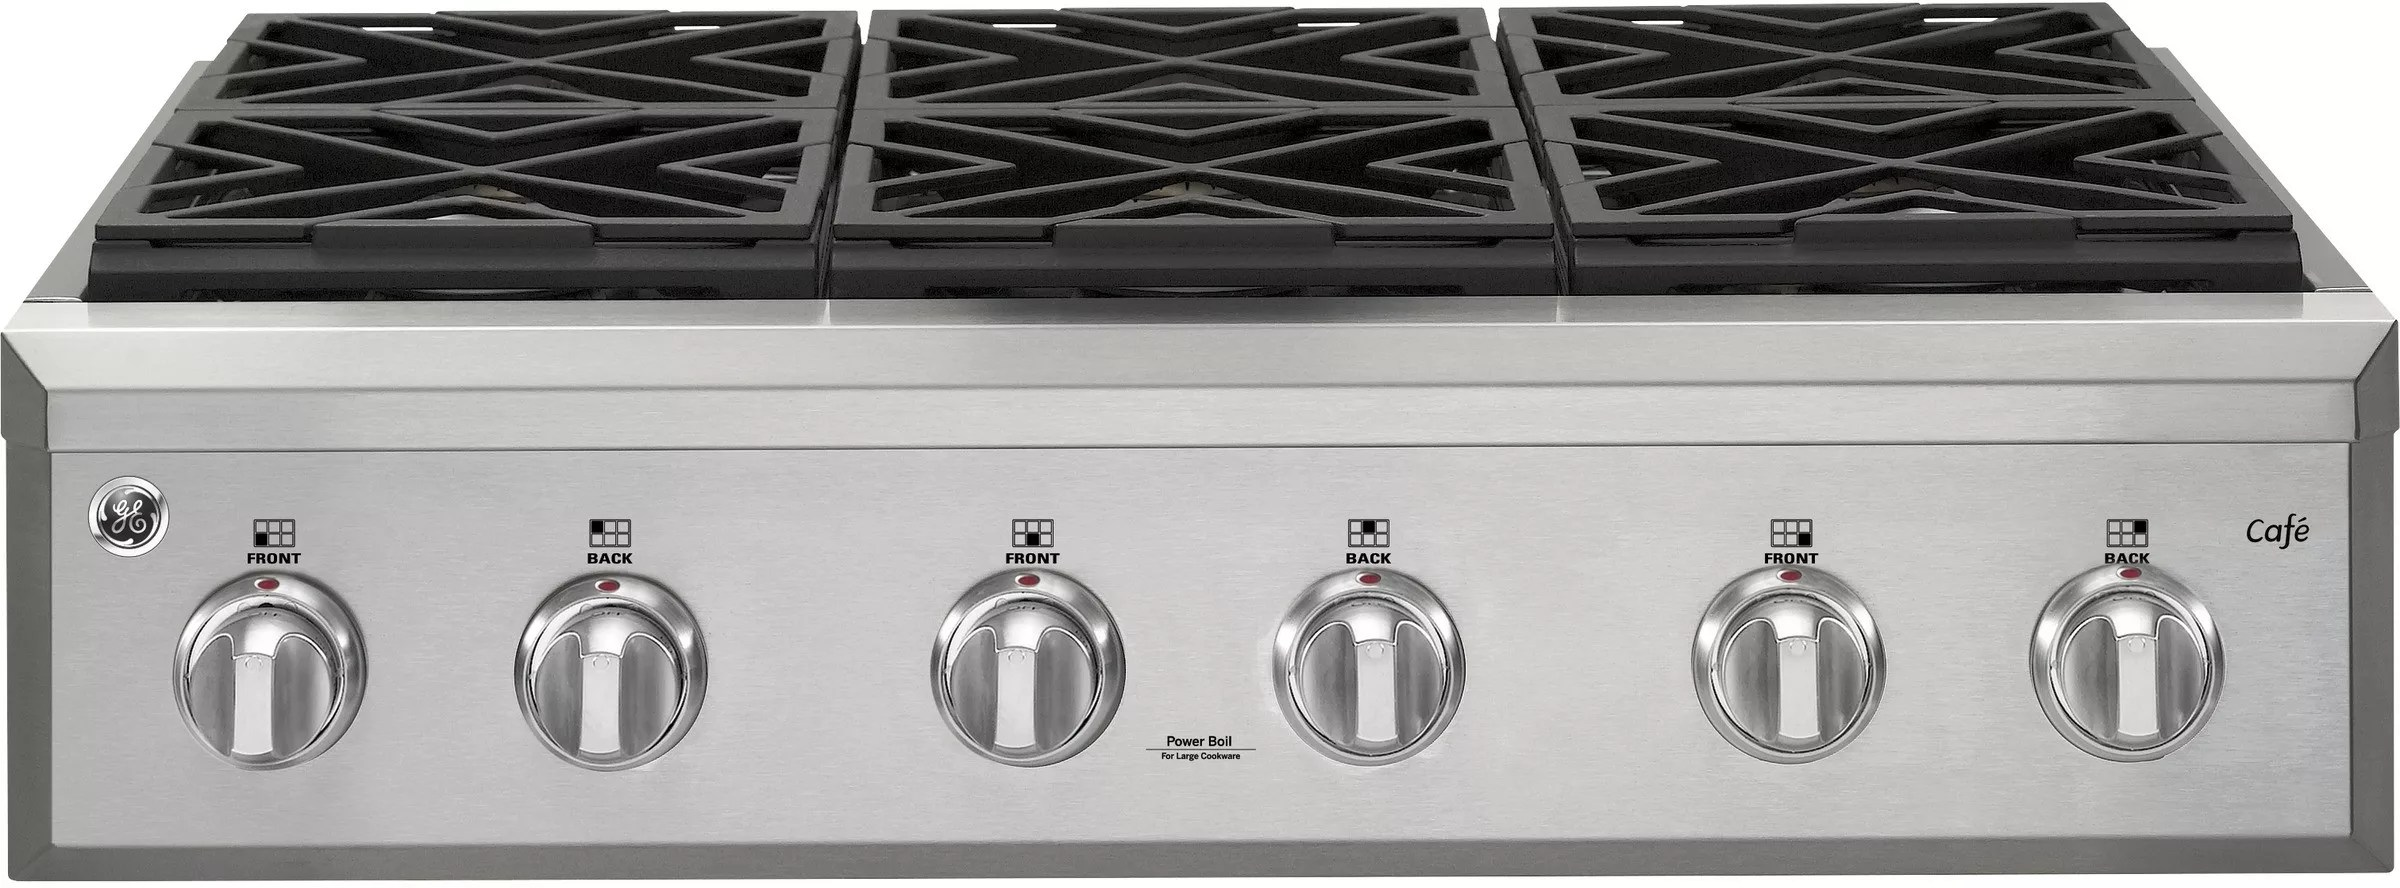 kitchen appliance packages stainless steel cheap backsplash ge cgu366sehss 36 inch natural gas rangetop with ...